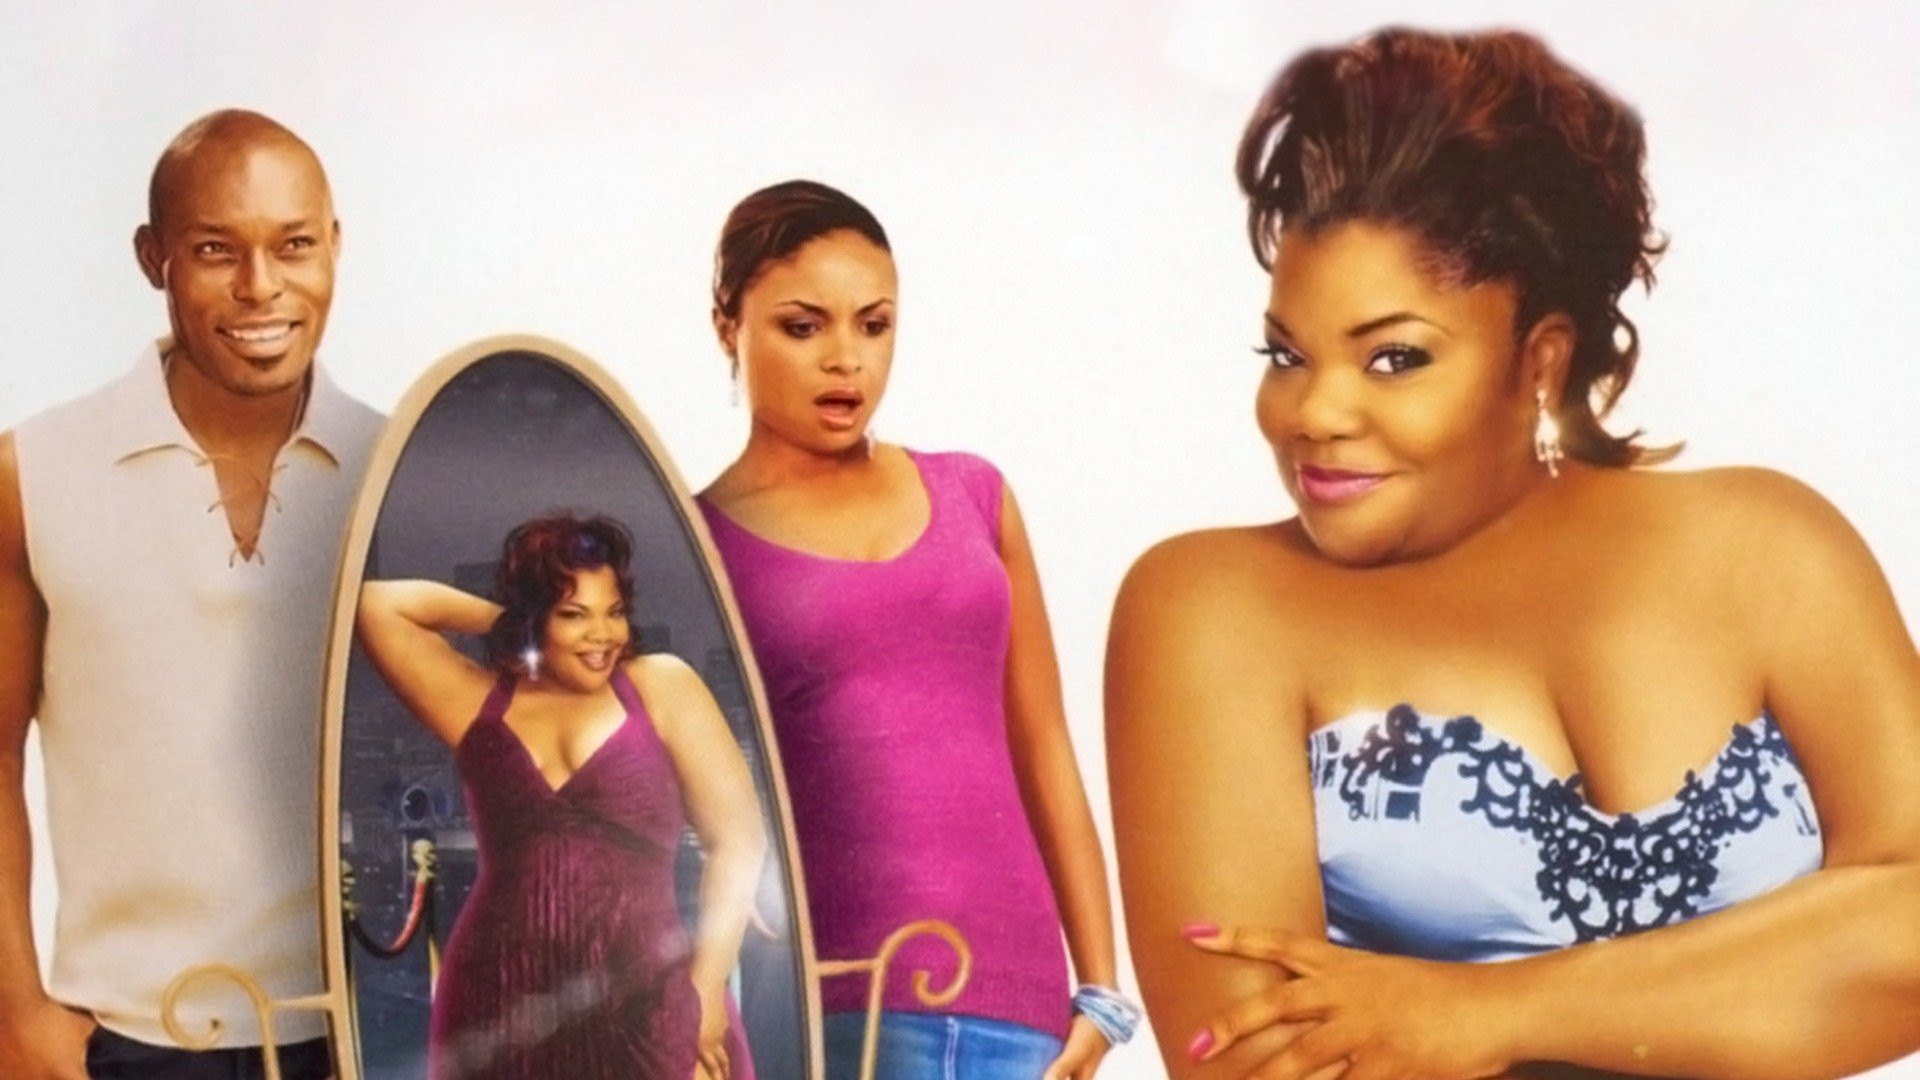 Watch phat girlz full movie online